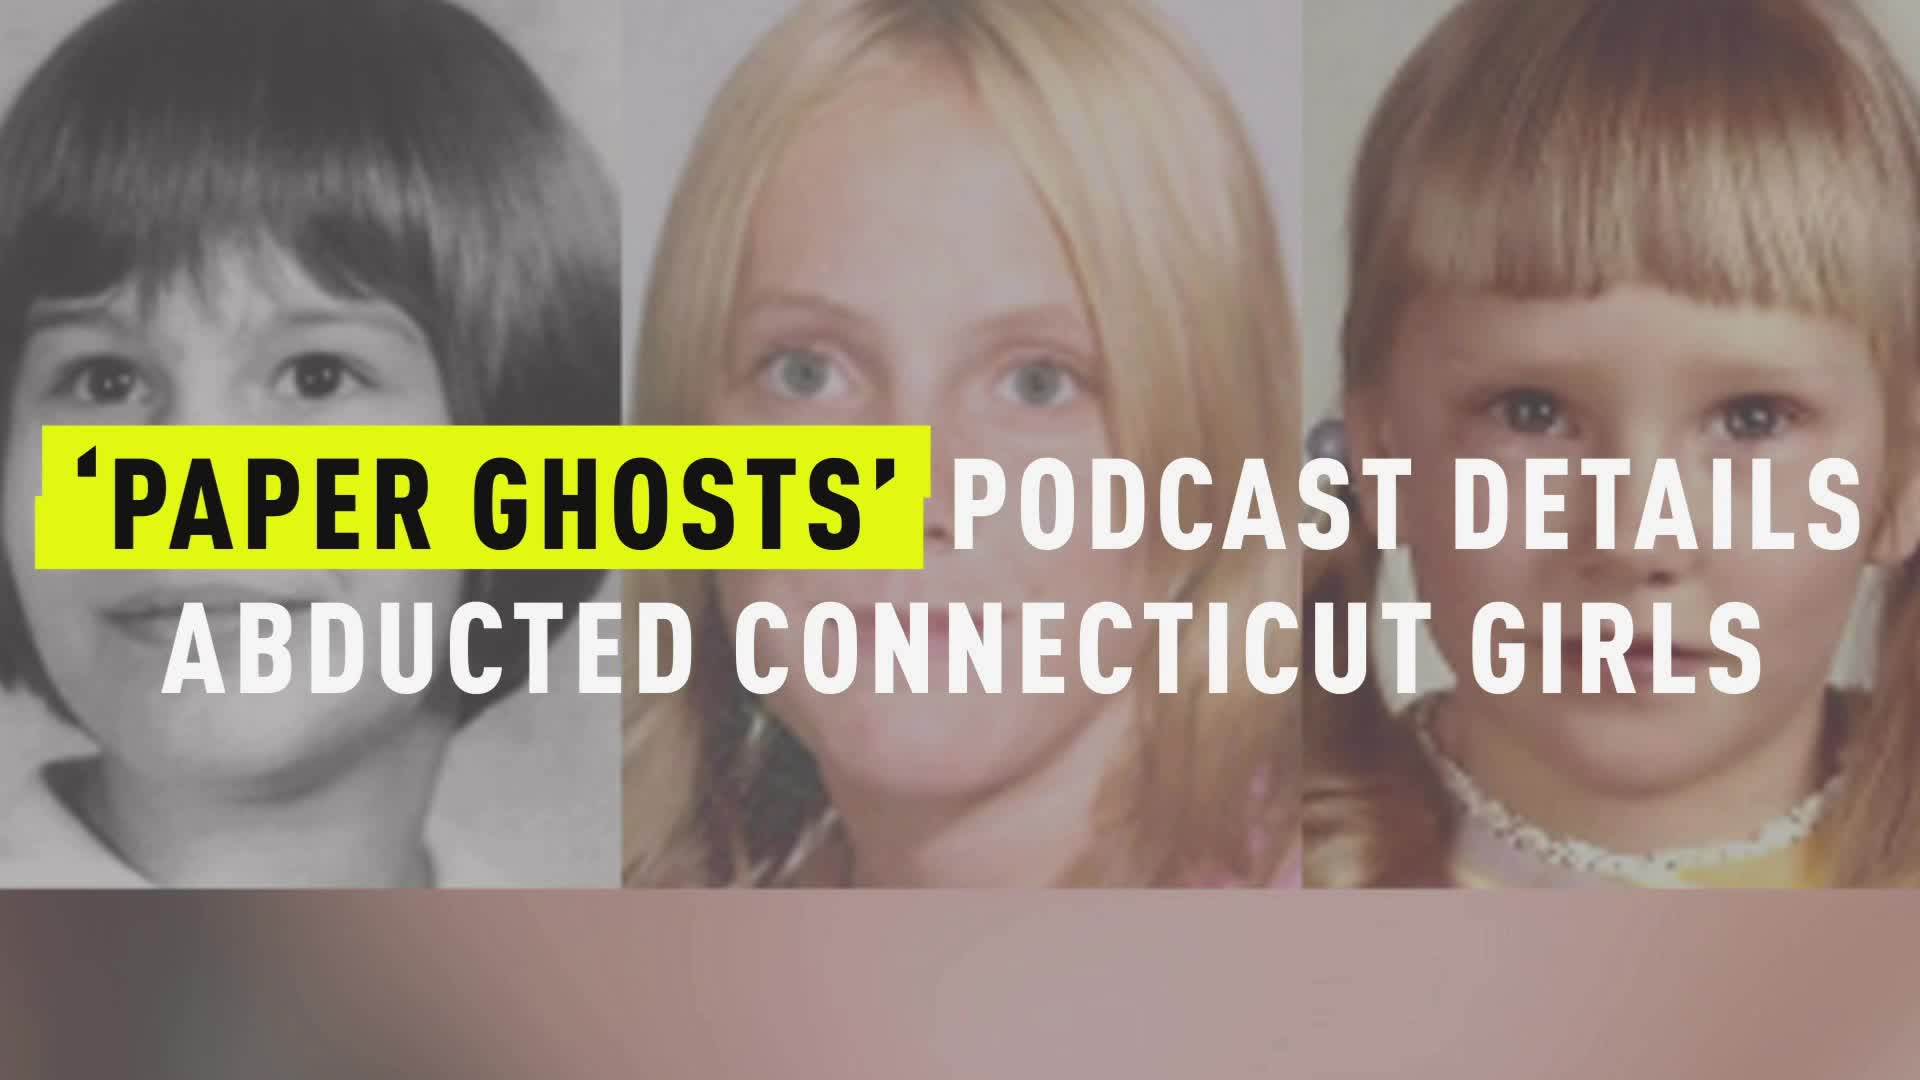 The 'Paper Ghosts' Podcast Details Abducted Connecticut Girls